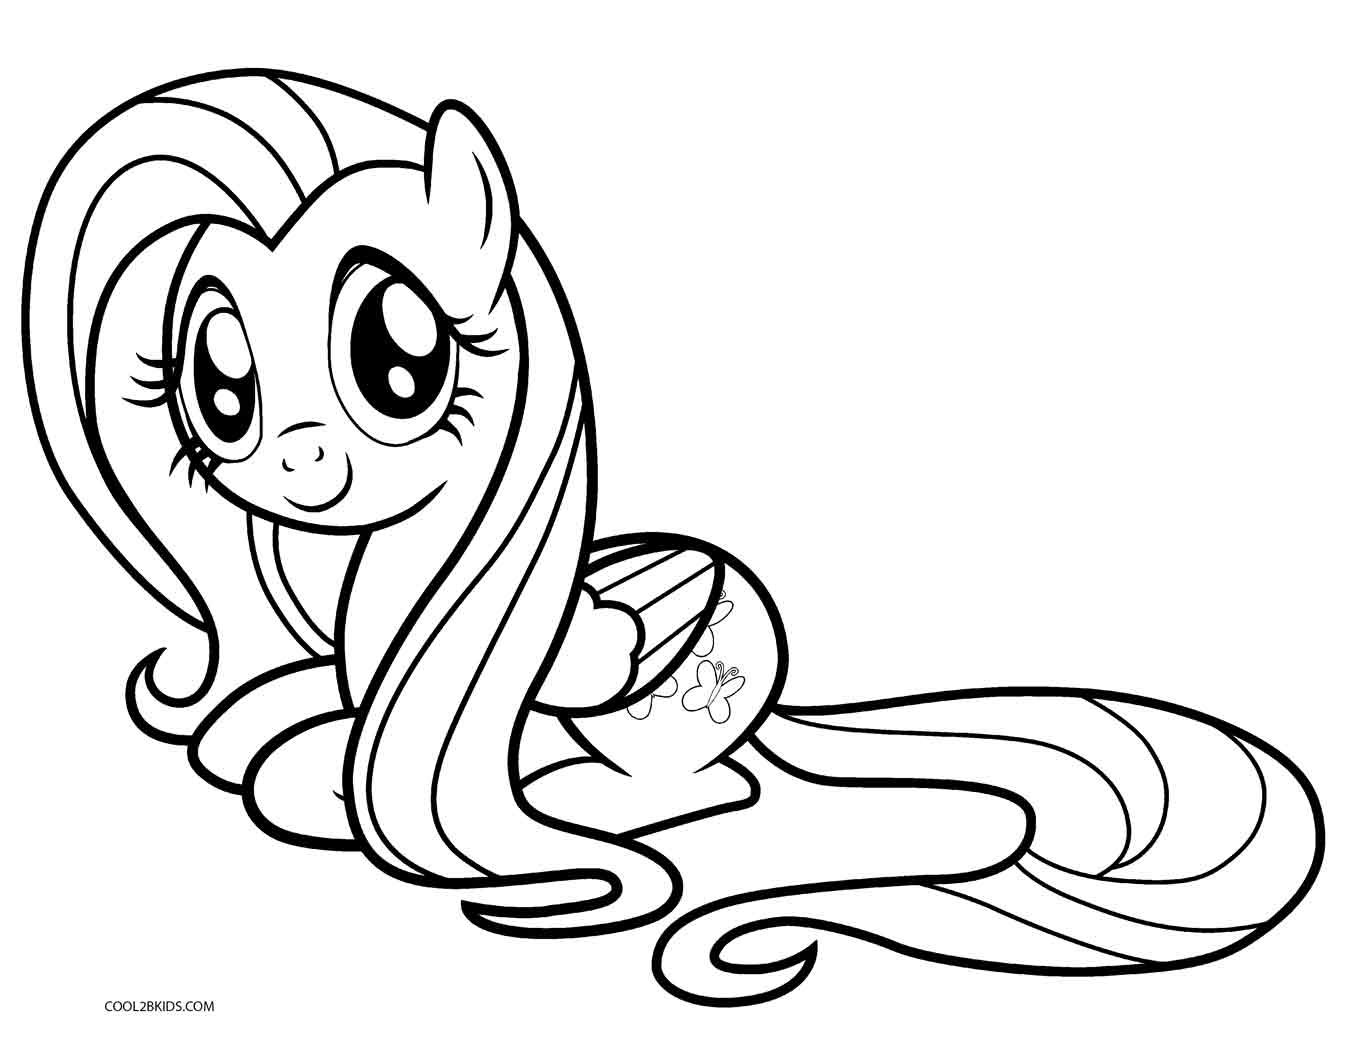 pony images for coloring free printable my little pony coloring pages for kids for images pony coloring